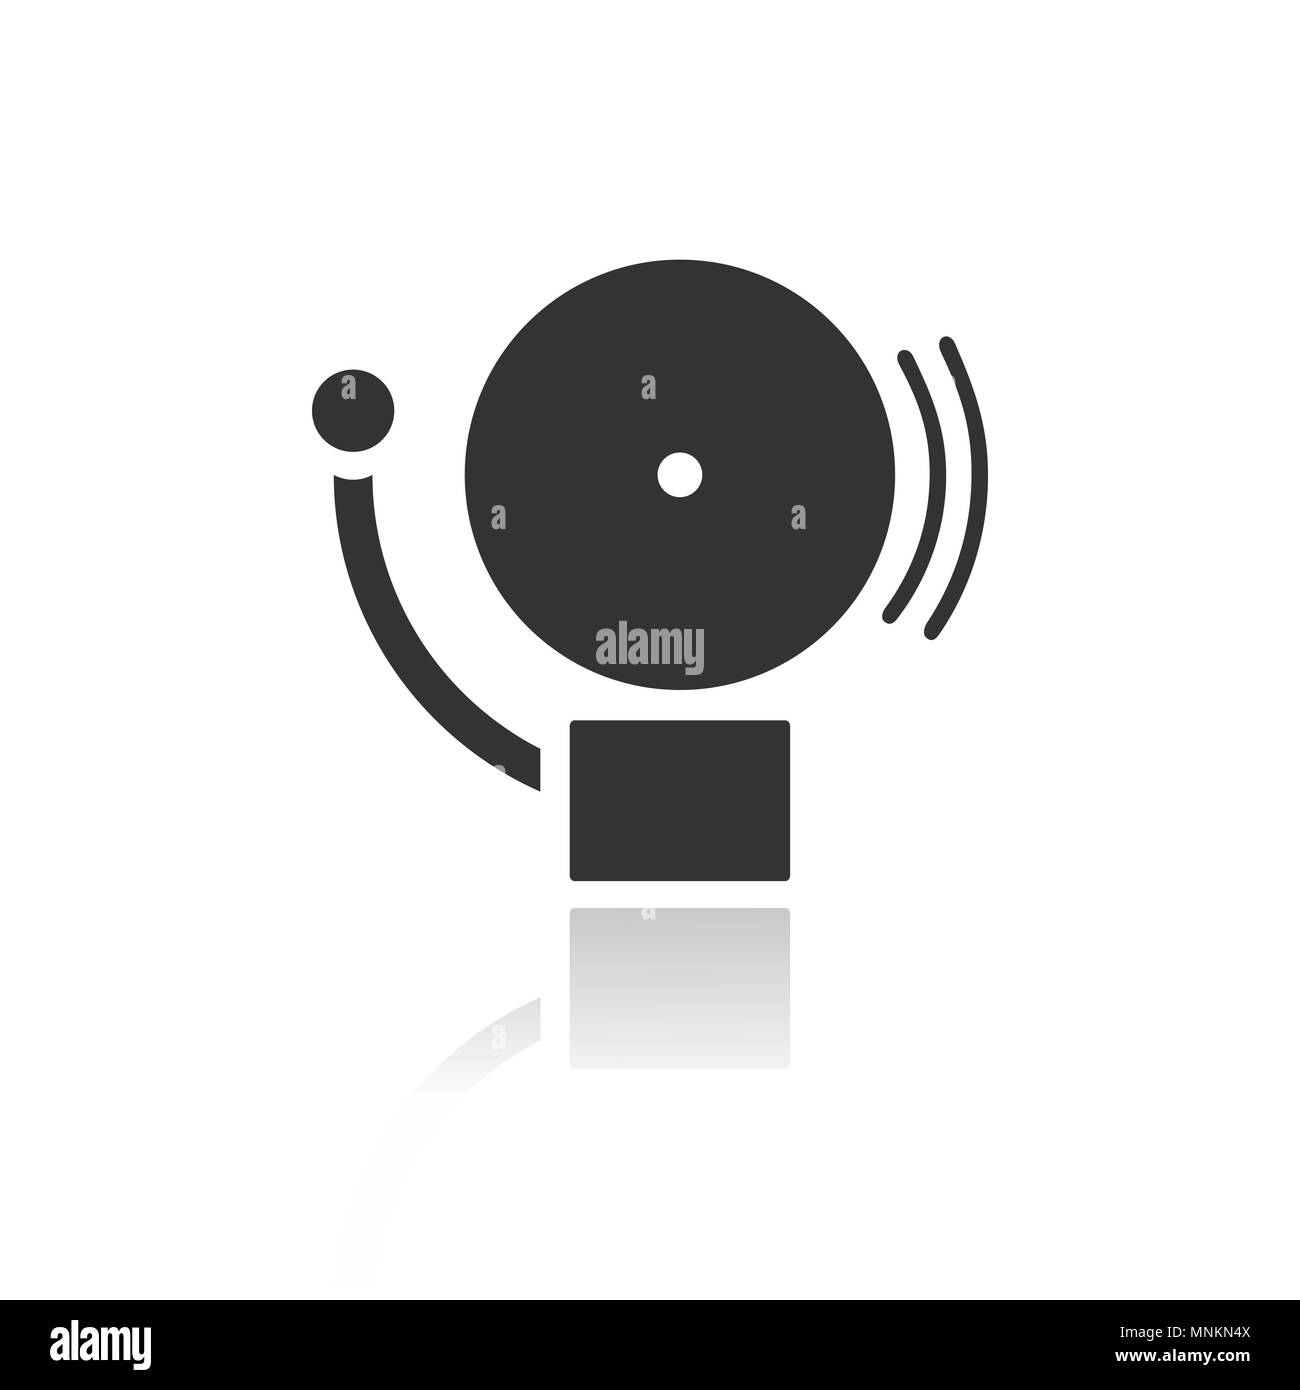 Alarm icon on a white background with reflection. Vector illustration - Stock Image